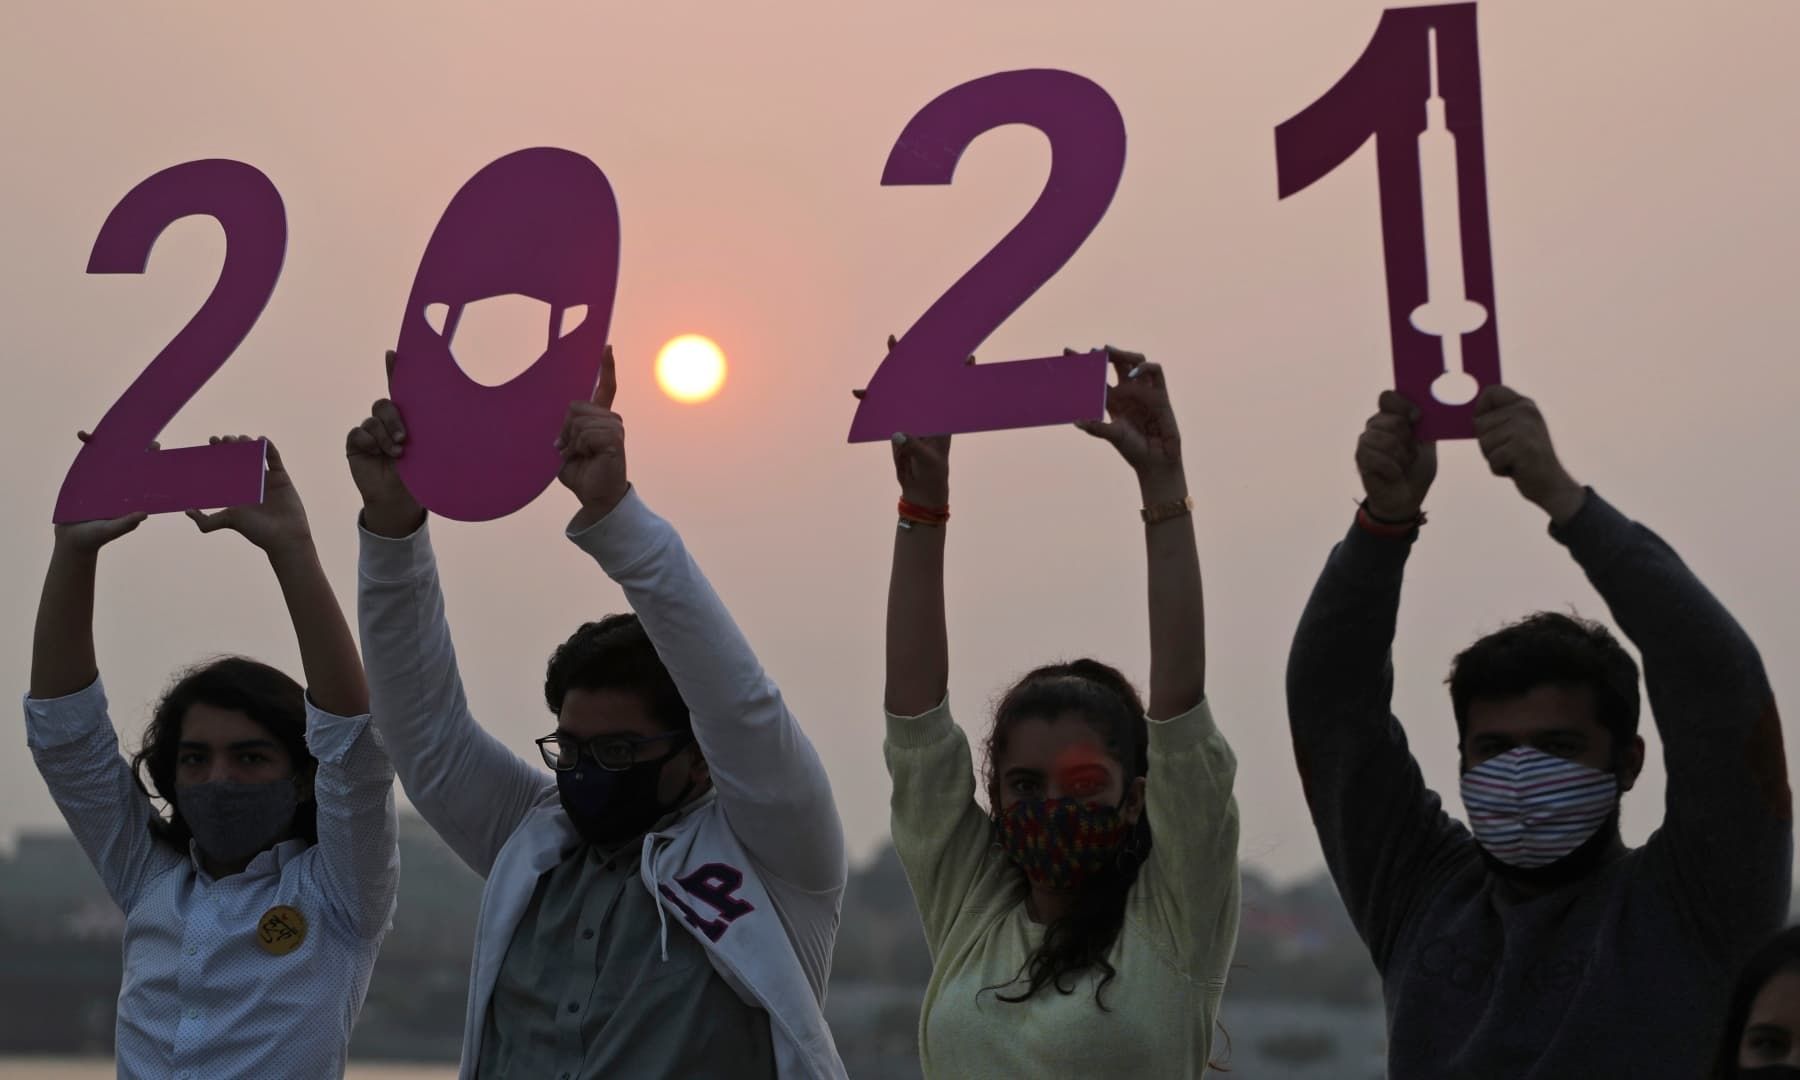 Indians hold cutouts welcoming 2021 on New Year's Eve in Ahmedabad, India, Thursday. — AP